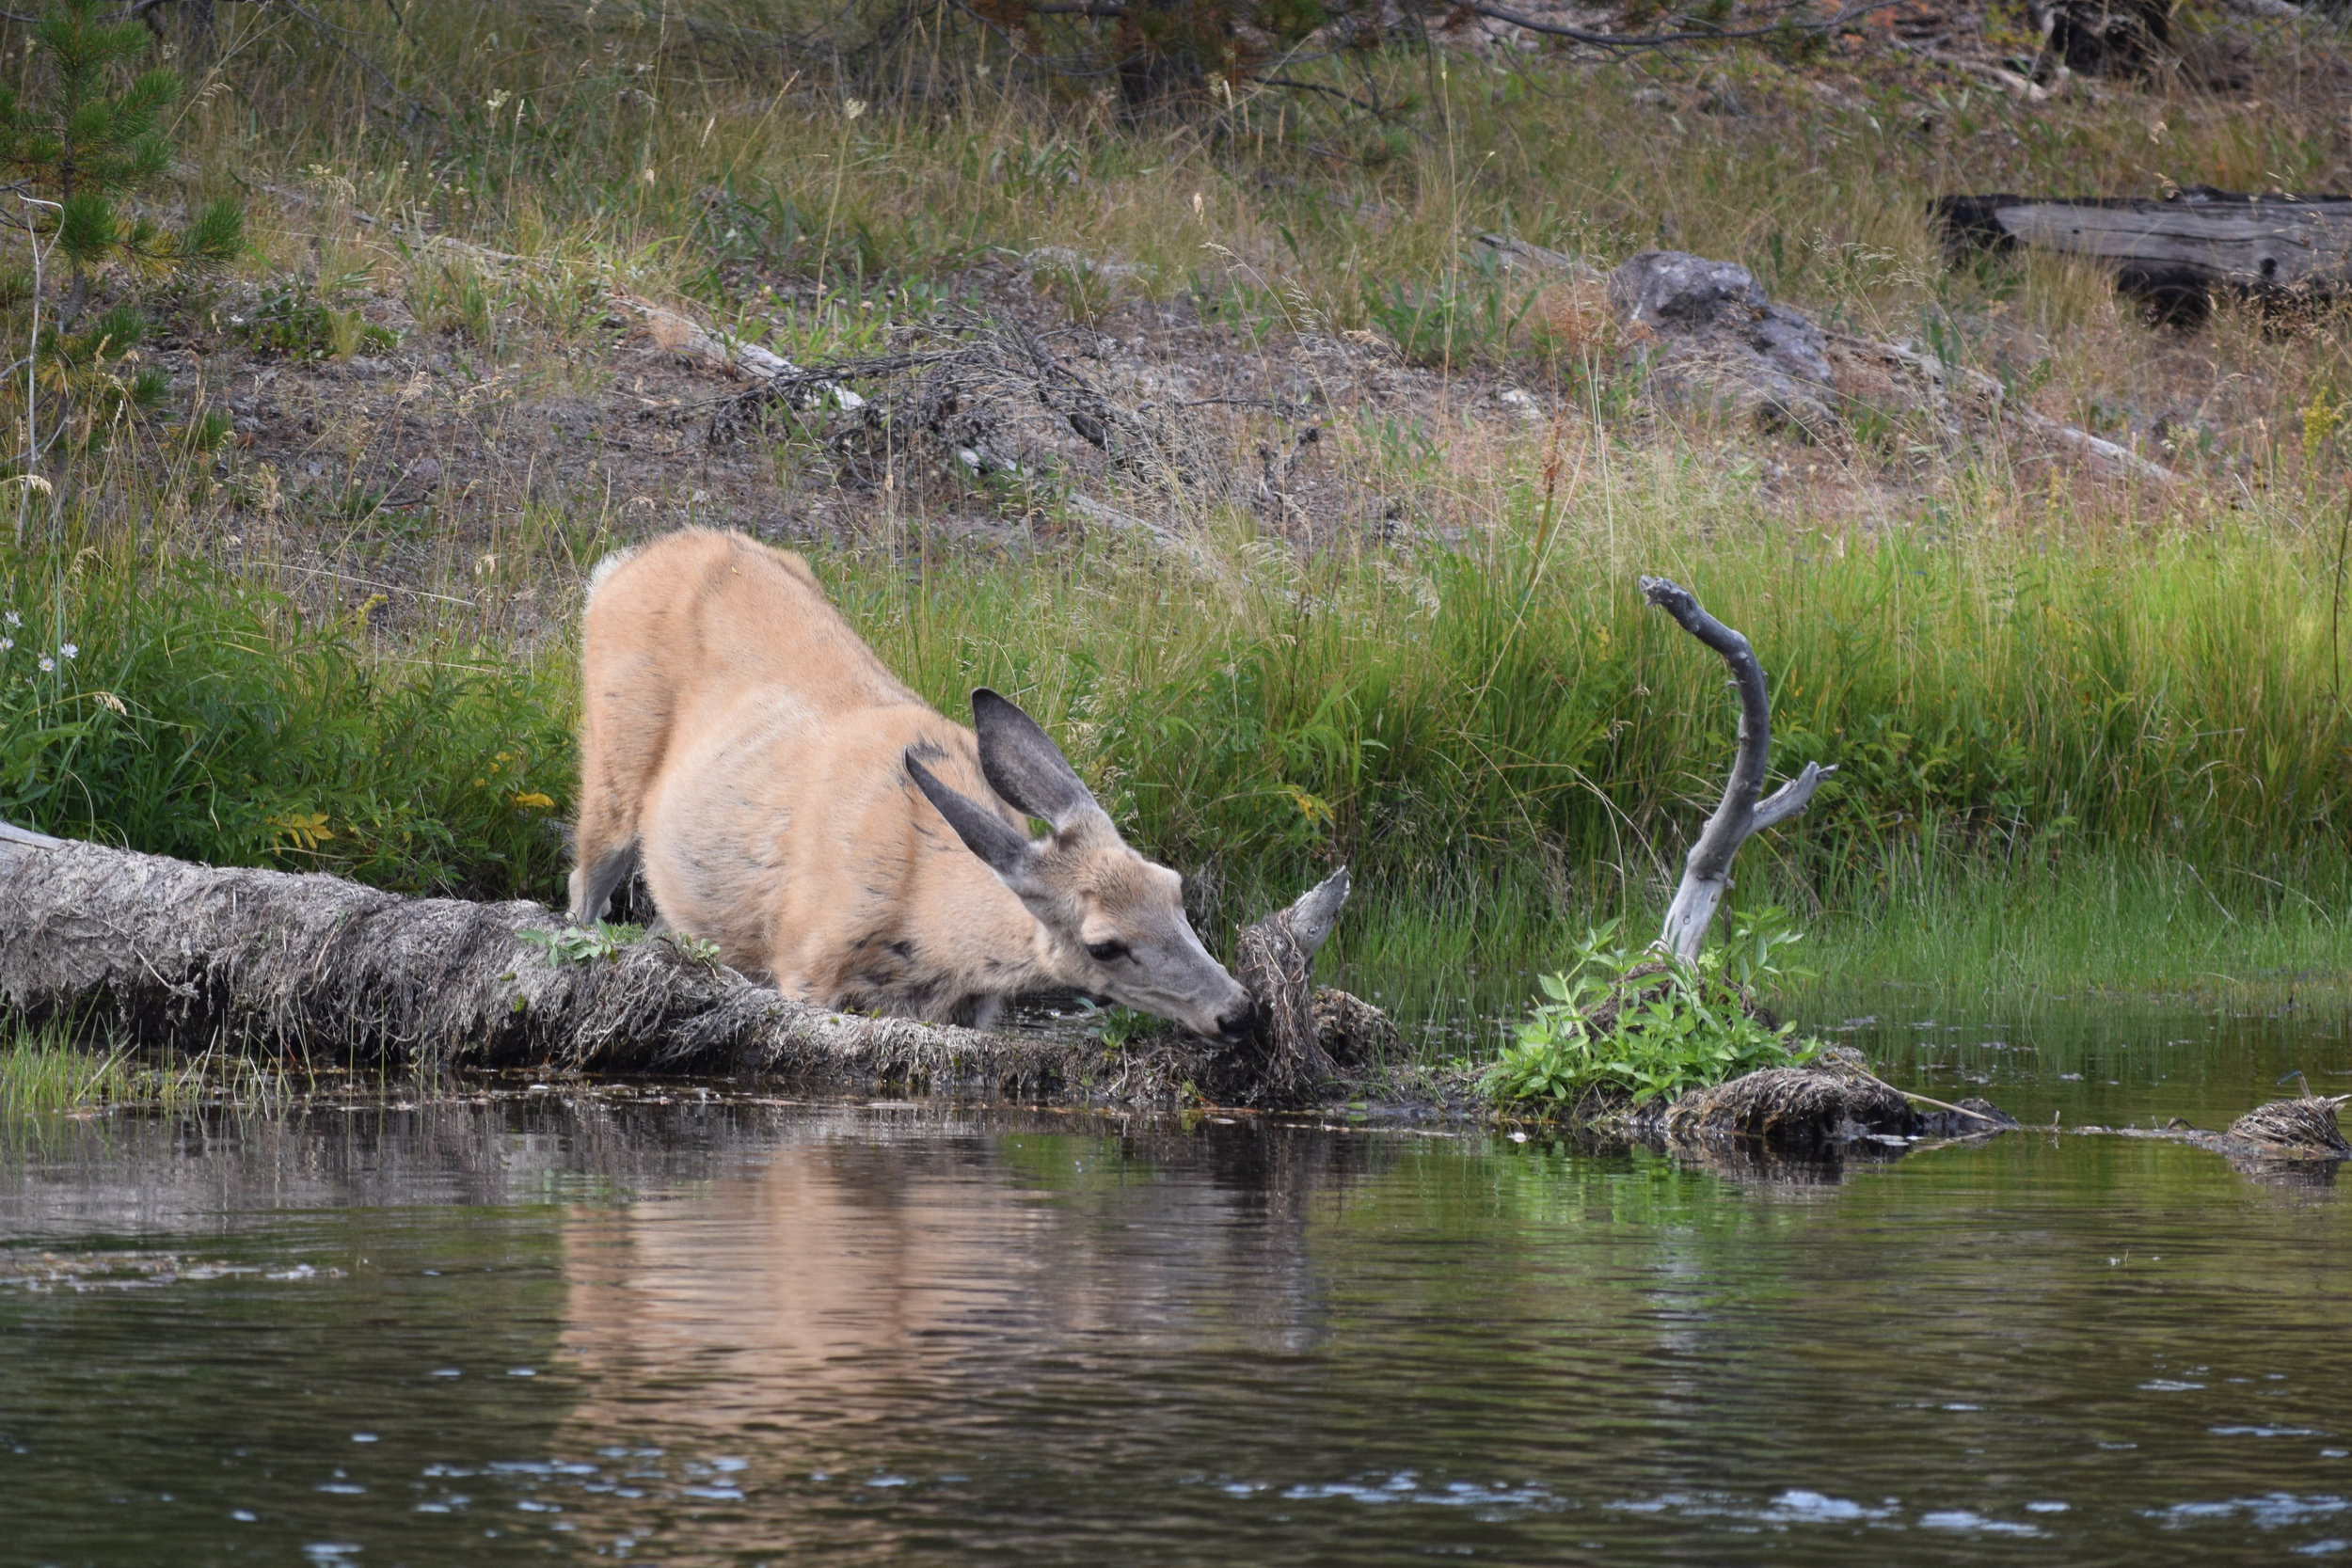 I was about 30 meters away from this elk cow when I took the photo, and there were several other photographers present. But we were all quiet and well-behaved, and we gave her the space she needed and deserved.